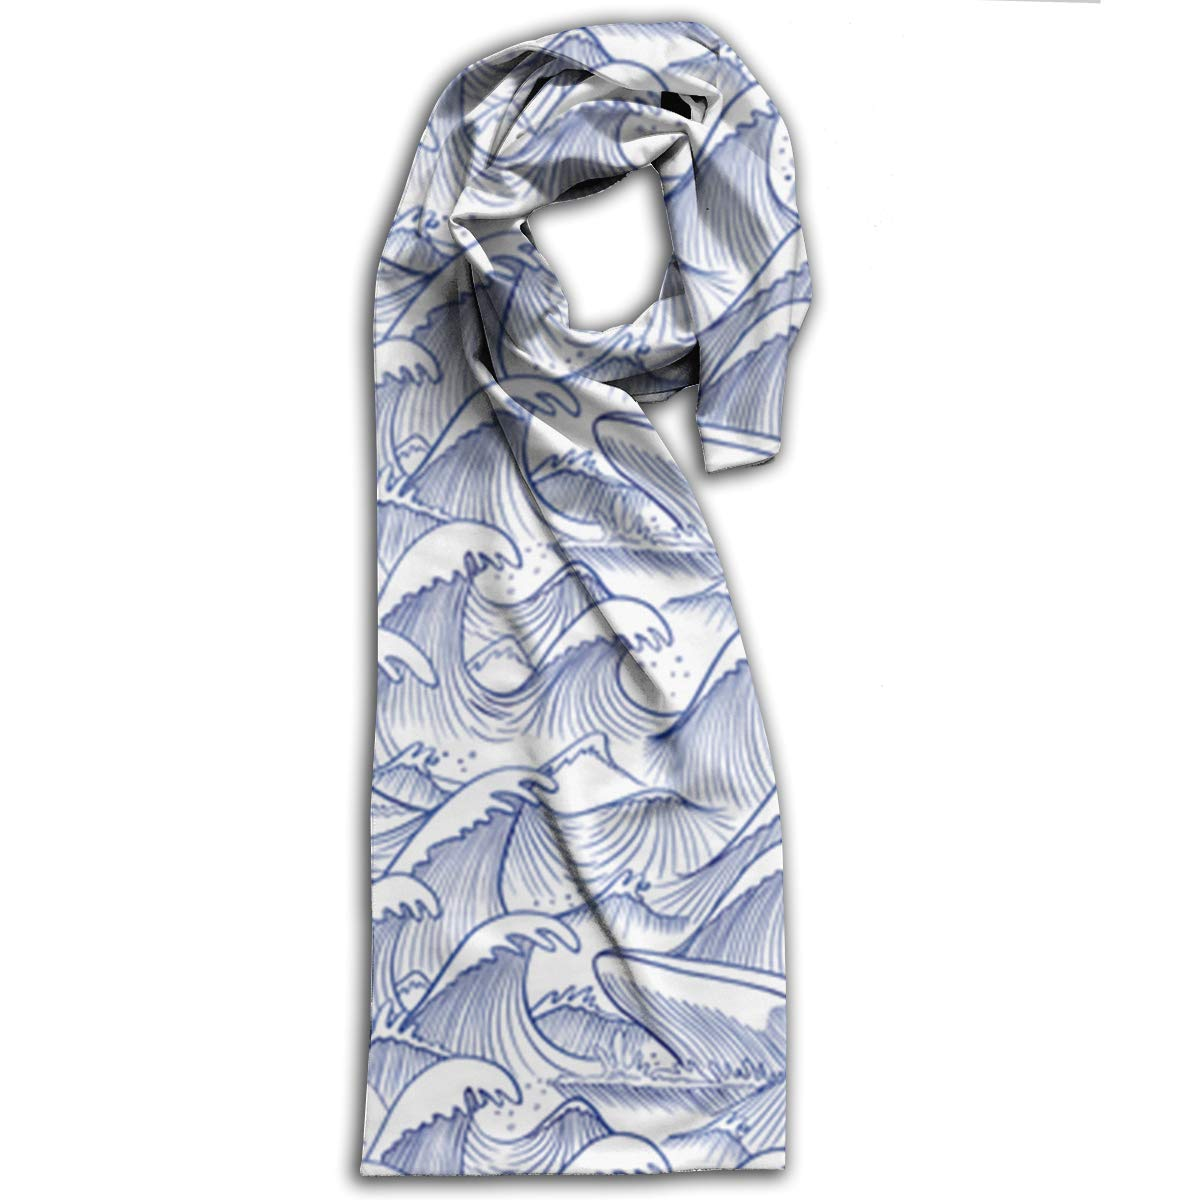 af98d066a264 Turbulent Oceans Long Scarfs Womens Stylish Shawl Wrap Large Blanket For  Fall   Winter 11